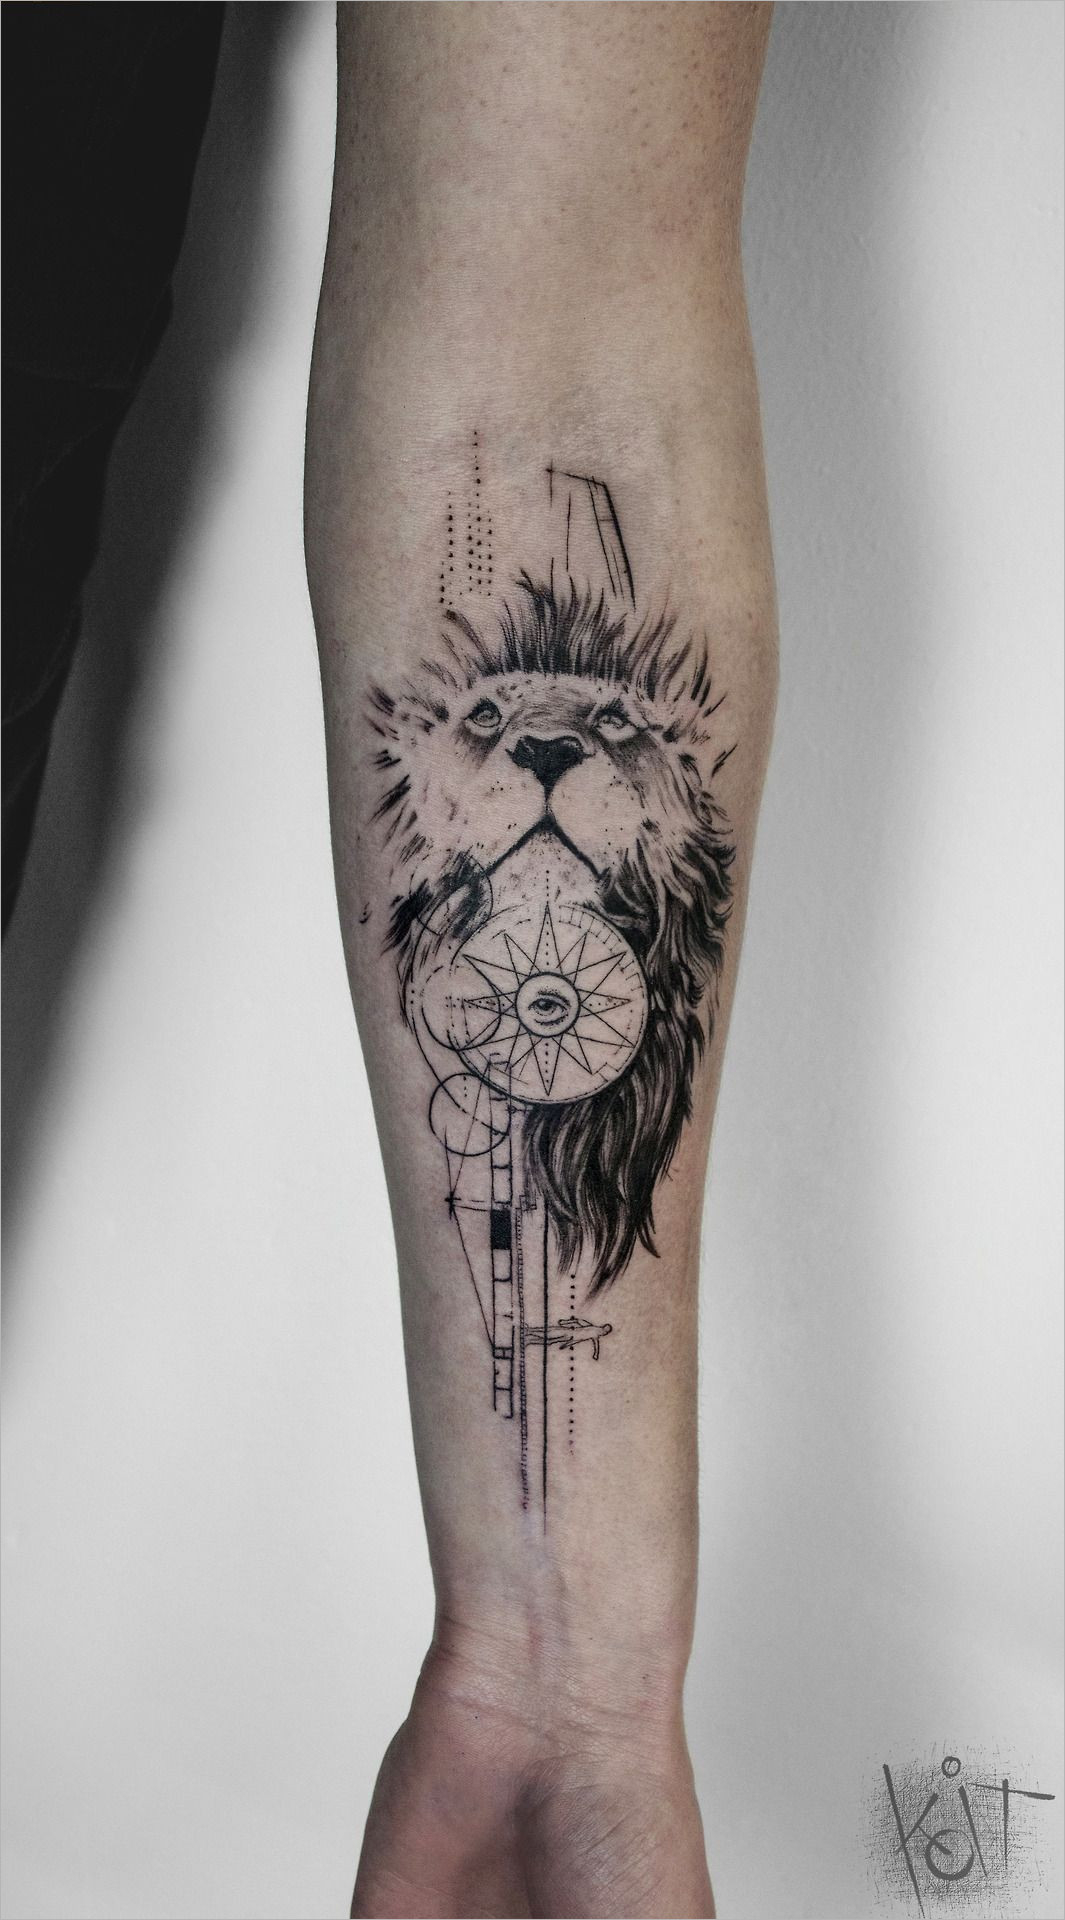 Cool Arm Tattoo Designs For Guys Best Of Arm Tattoo Designs Guys intended for size 1065 X 1920